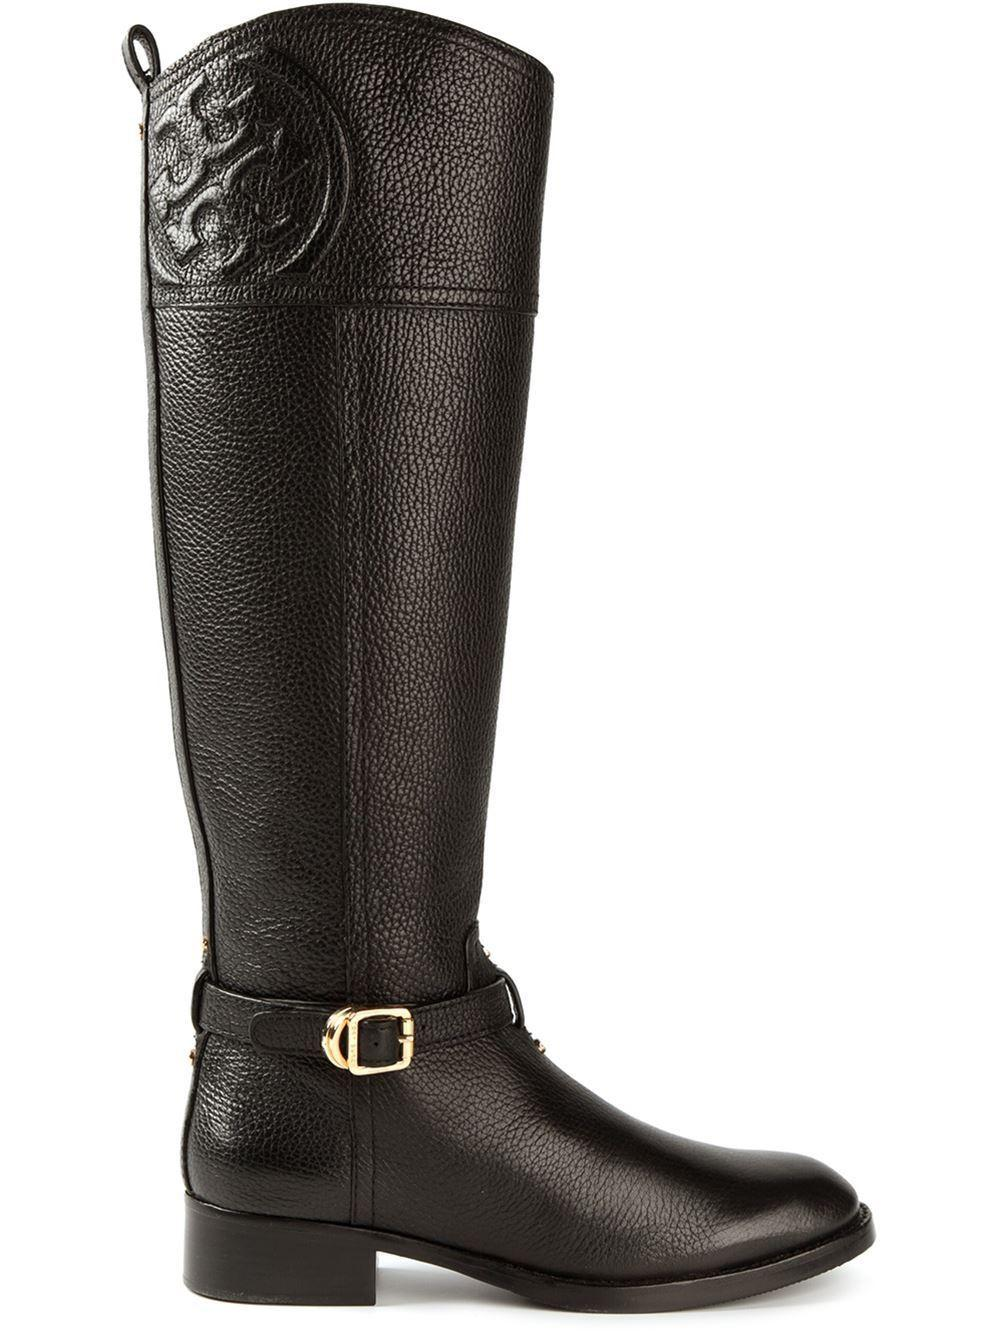 Tory Burch Tumbled Black Leather Riding Boot Flat Equestrian Bootie 6.5 Logo